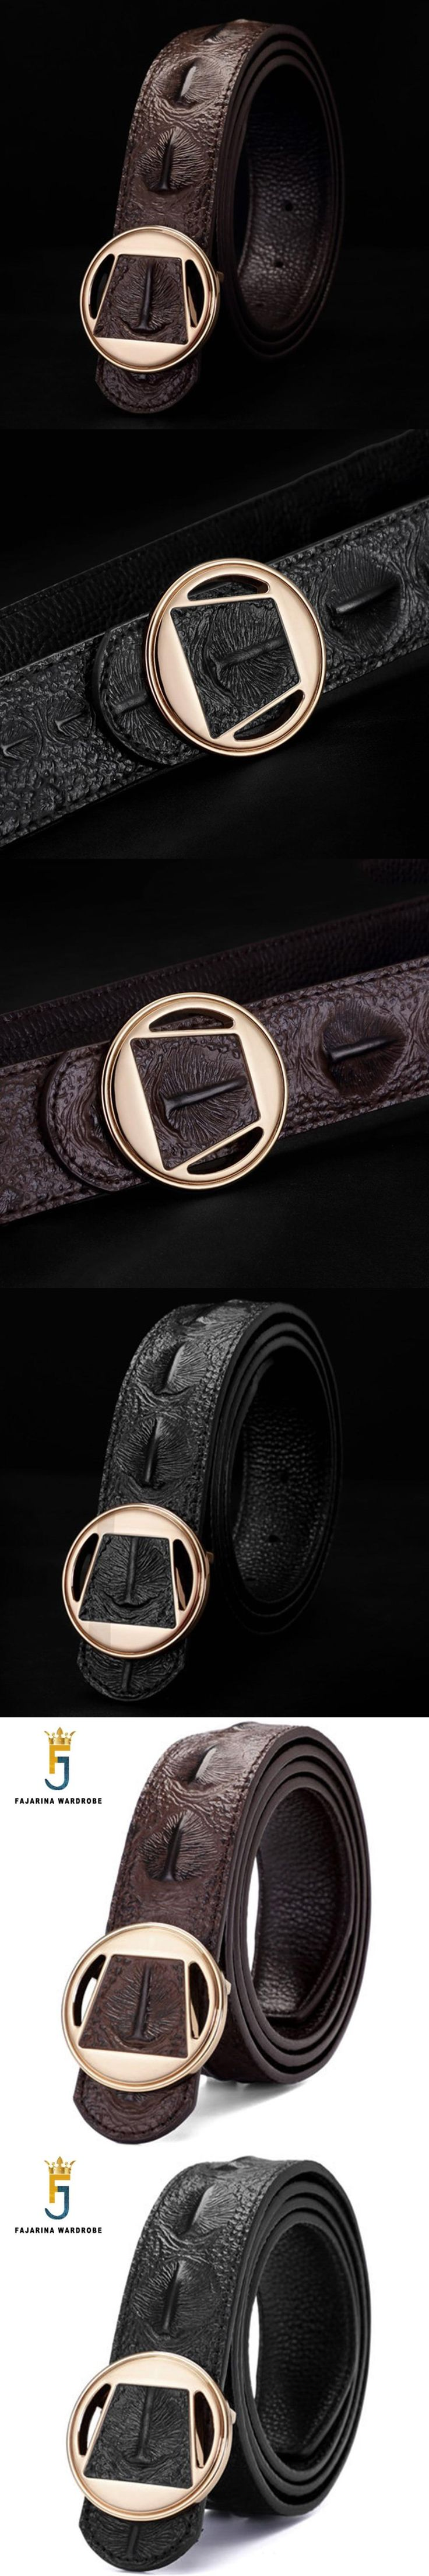 FAJARINA Unique Design Fashion Crocodile Print Pure Cowhide Genuine Belt Straped Leather Slide Buckle Belts for Men LUFJ420A